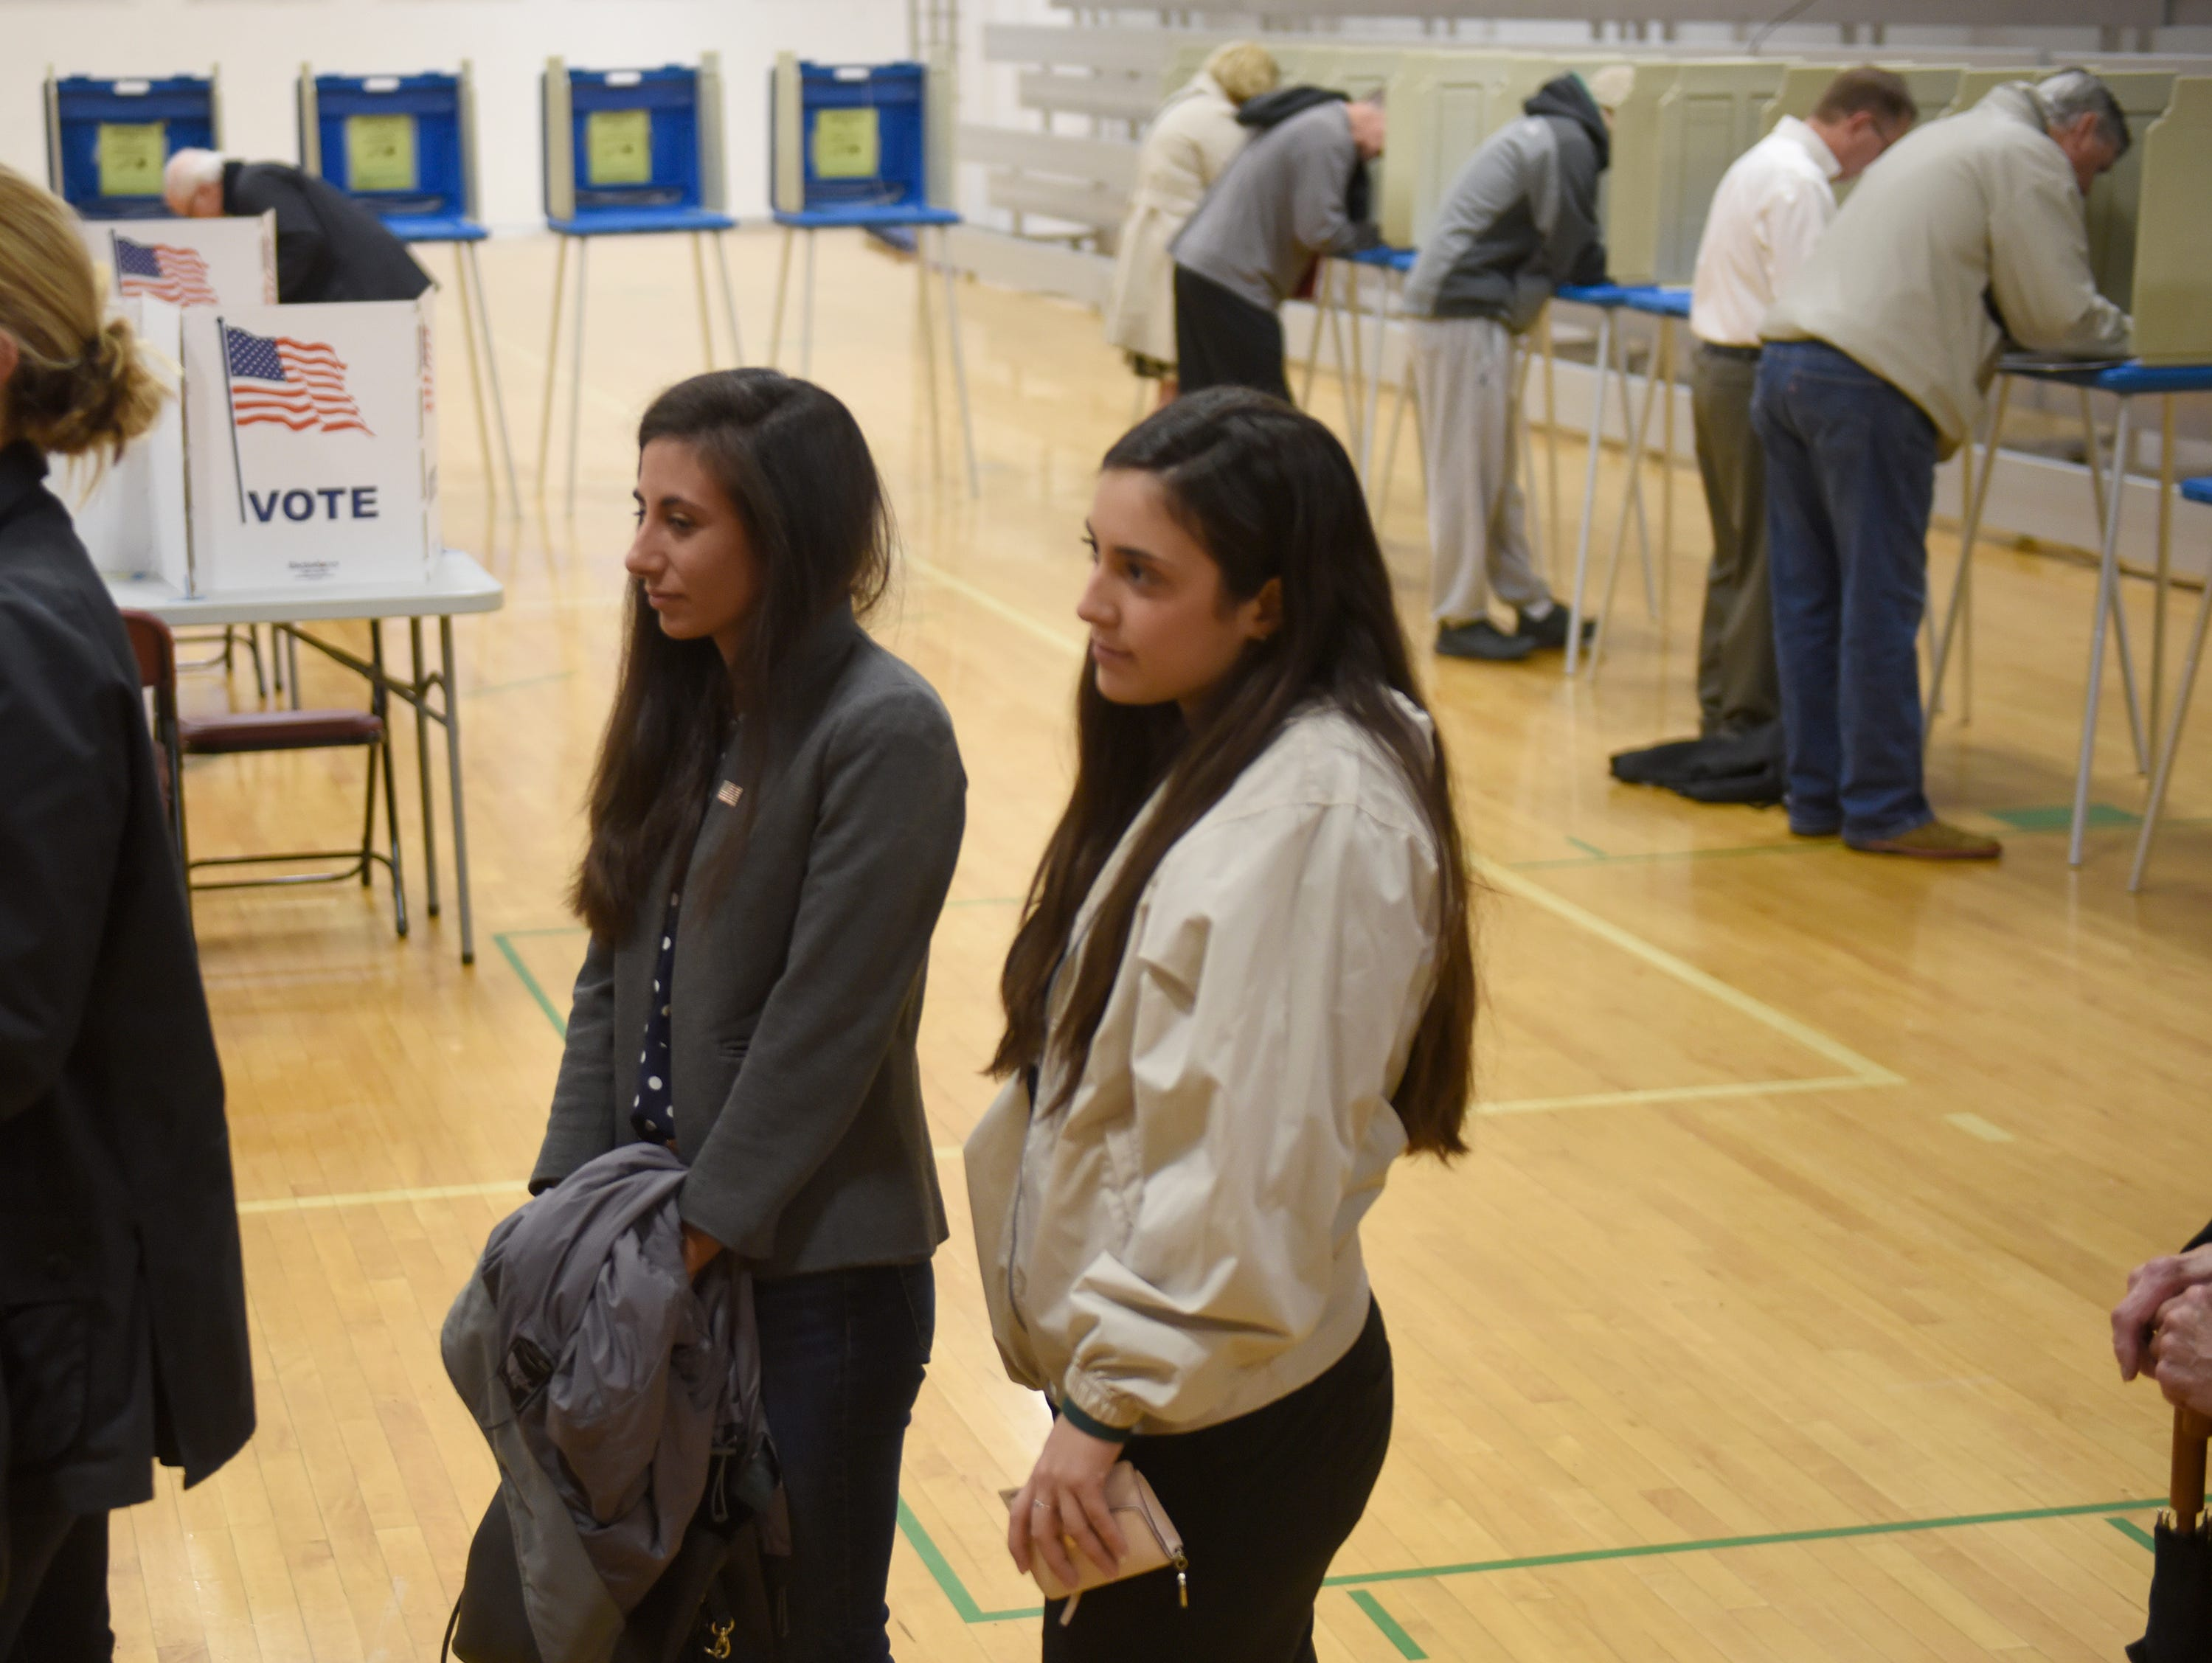 Mari Manoogian, Democrat candidate for state House District 40, and her sister Alis Manoogian wait in line to vote at Derby Middle School in Birmingham Nov. 6, 2018.